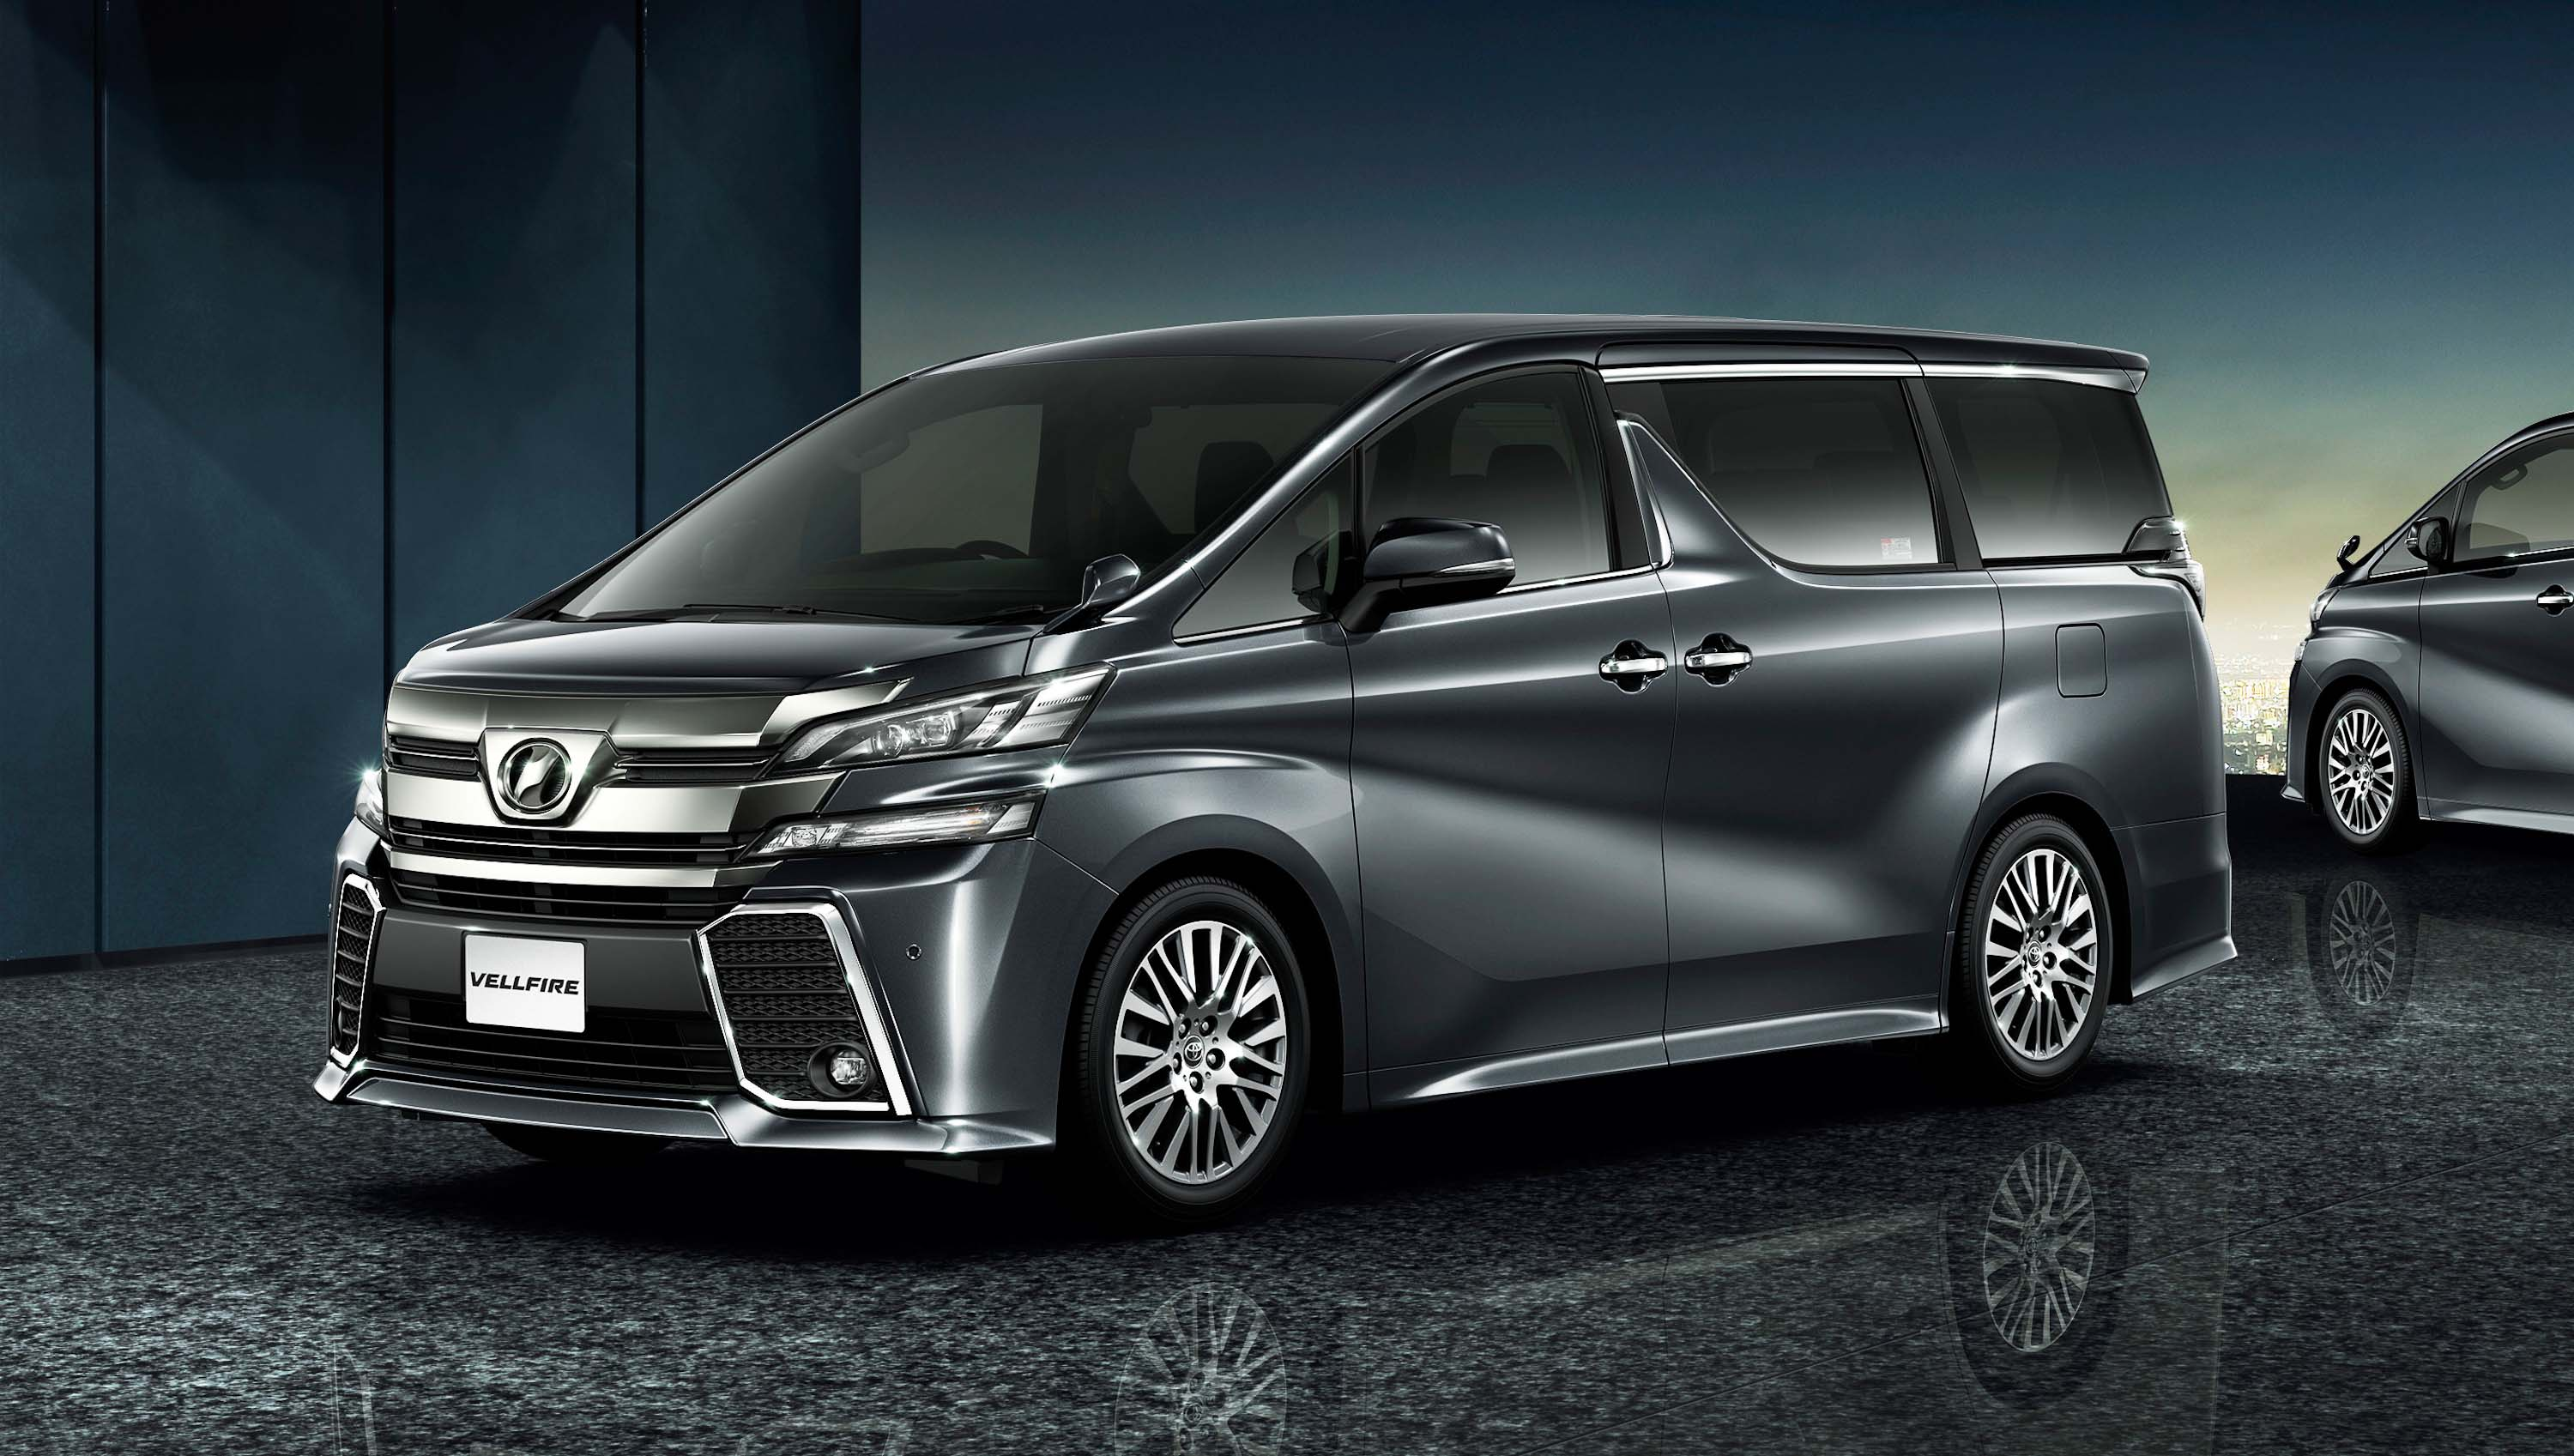 Toyota Vellfire: 3rd generation MPV photo gallery ...